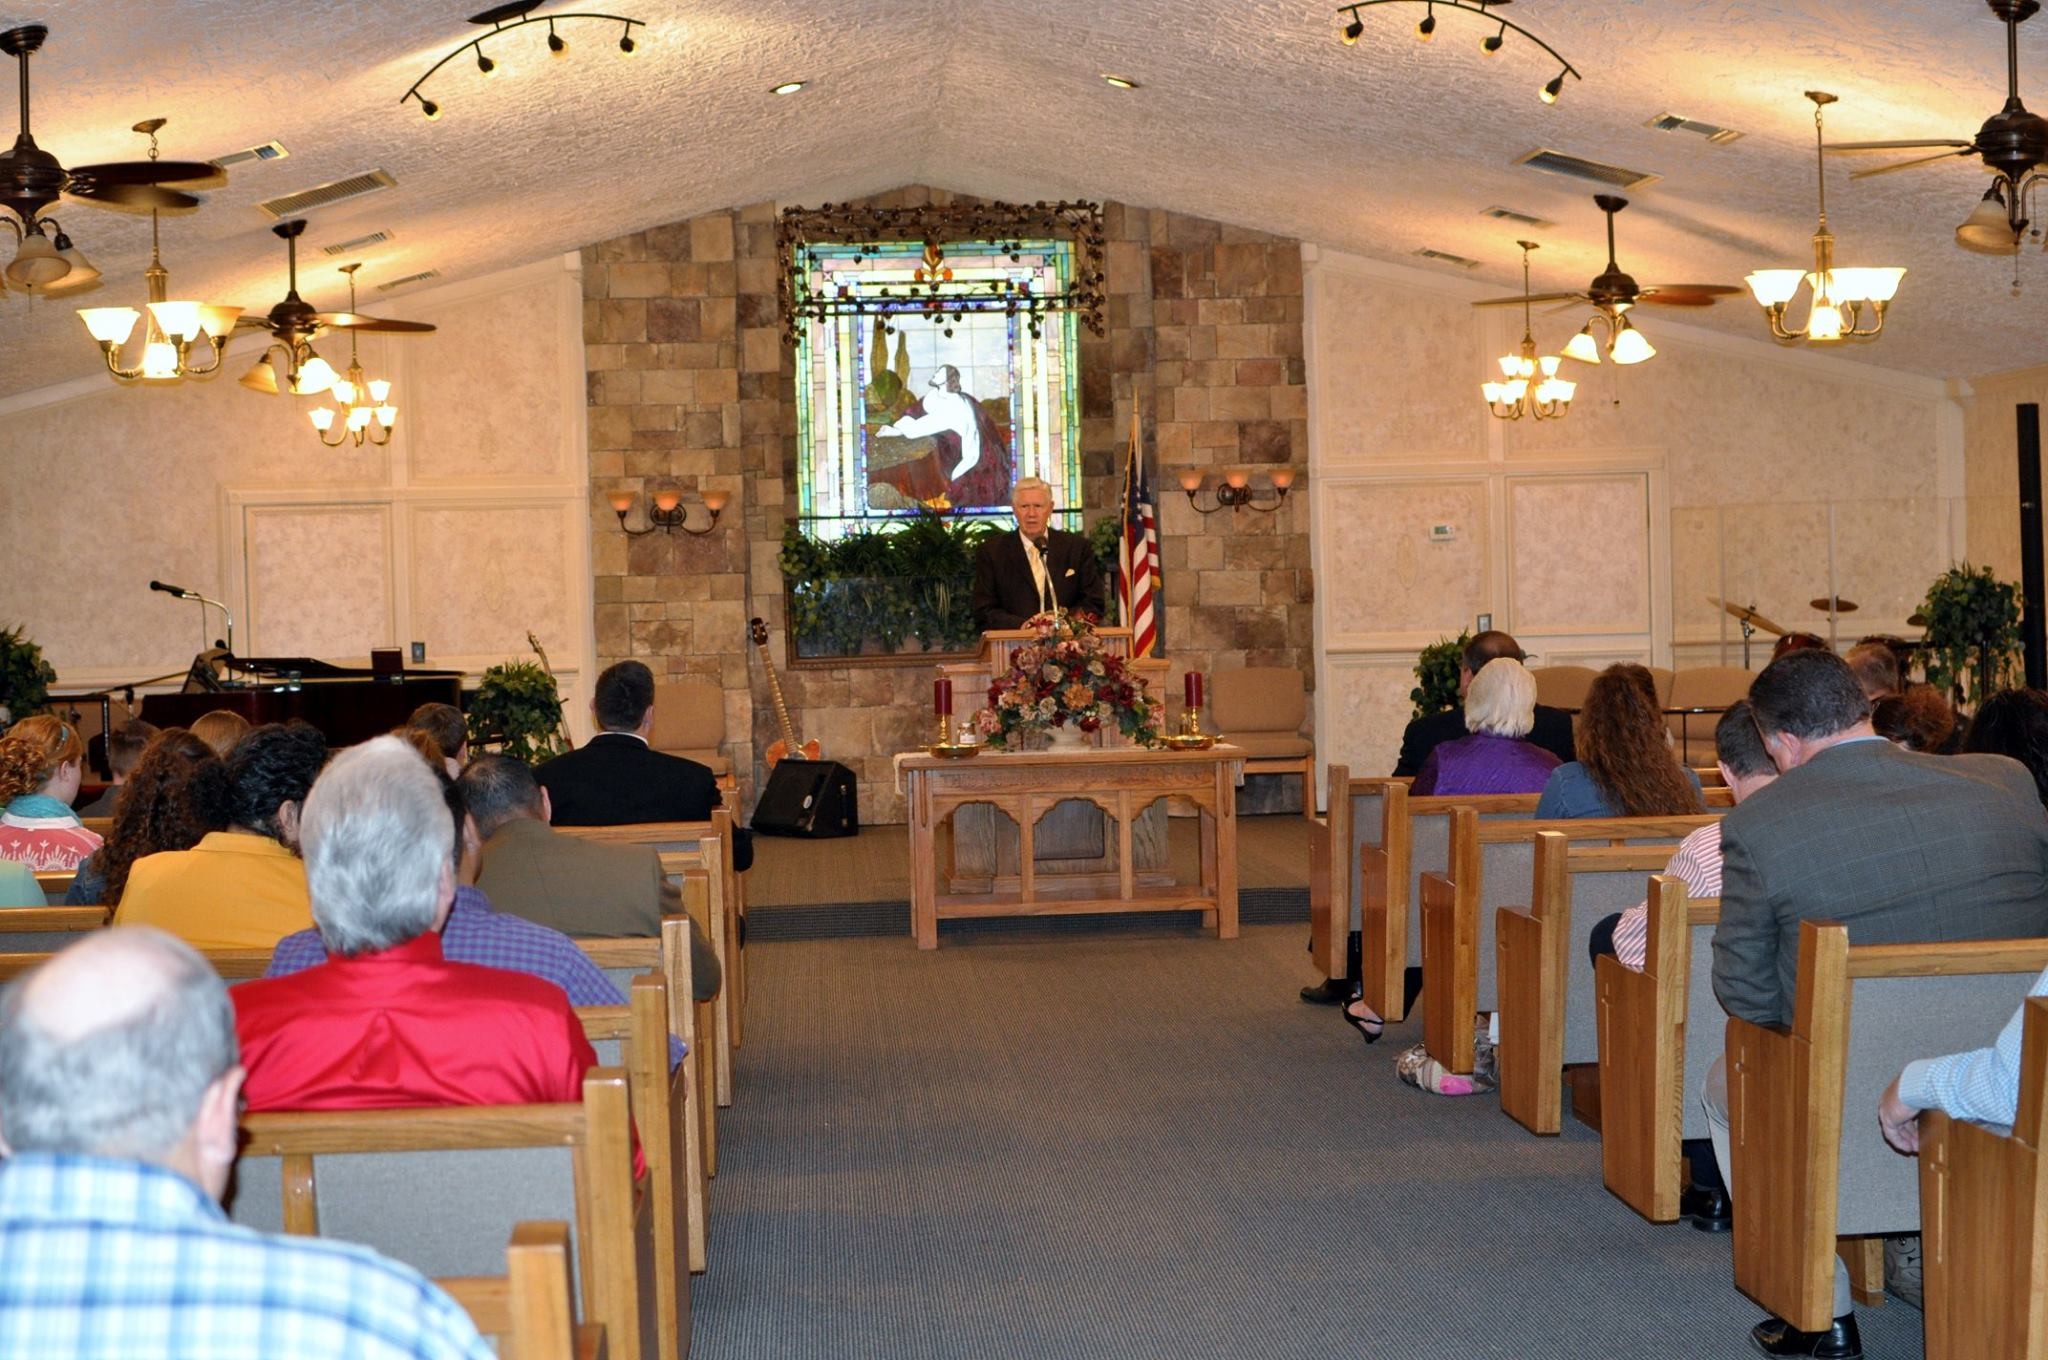 Camp Meeting Image 1